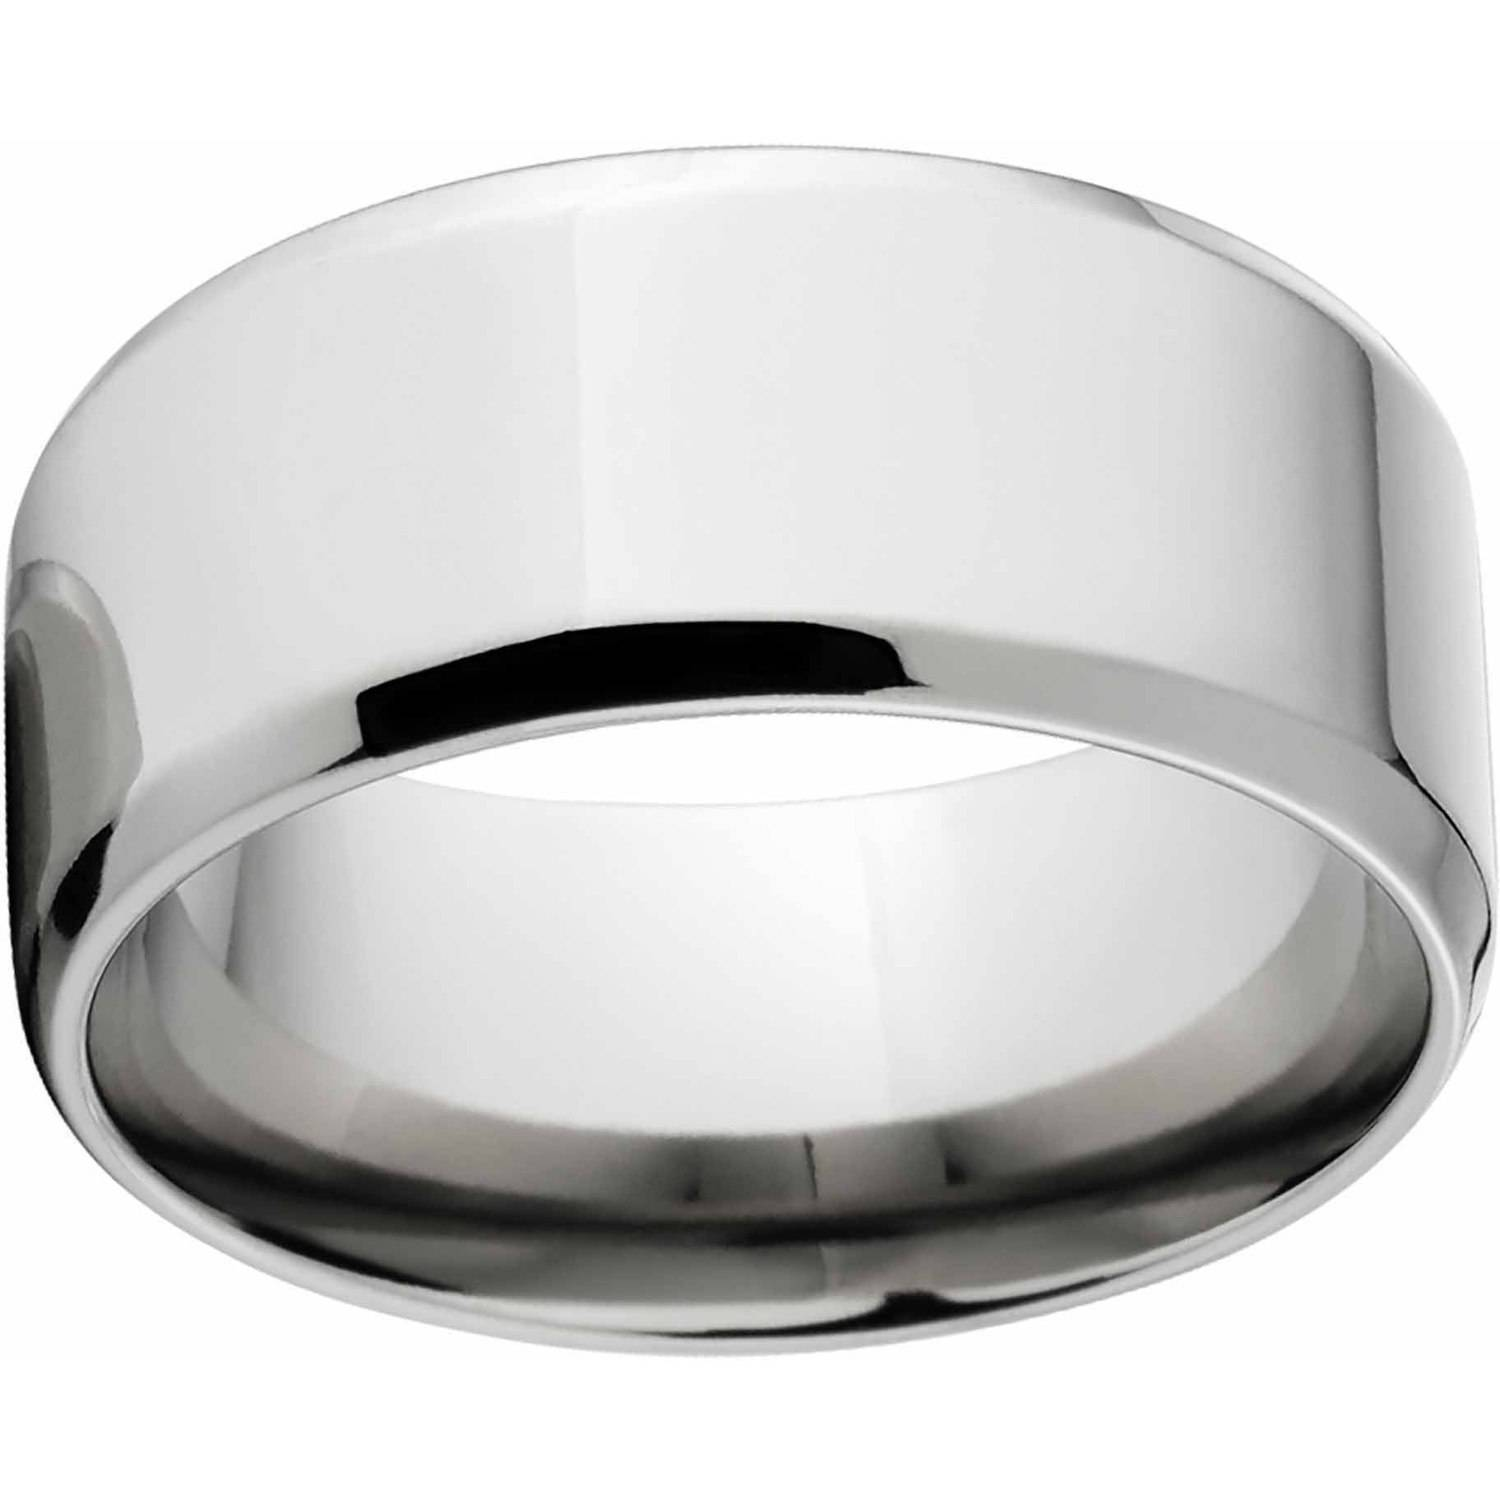 Polished 10mm Titanium Wedding Band with Comfort Fit Design